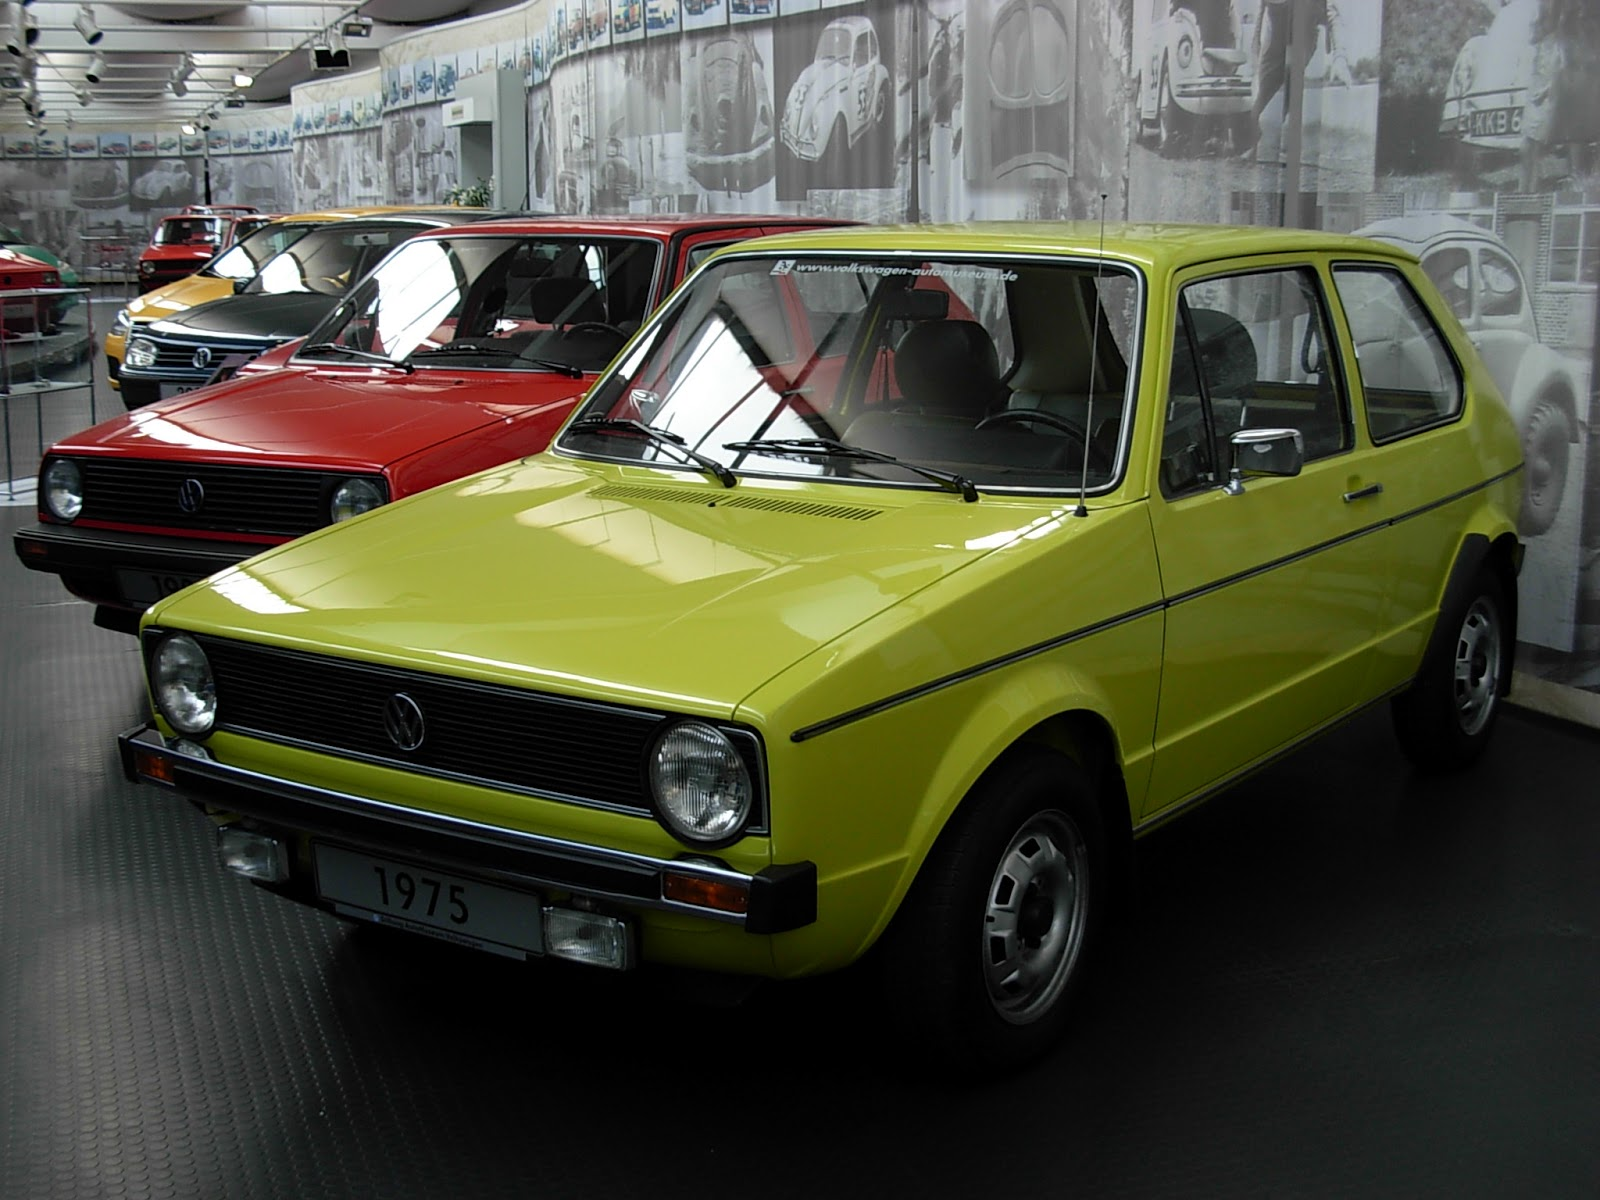 test drive vw golf gti mk1 1 6 del 1979 autodepocatestdrive. Black Bedroom Furniture Sets. Home Design Ideas